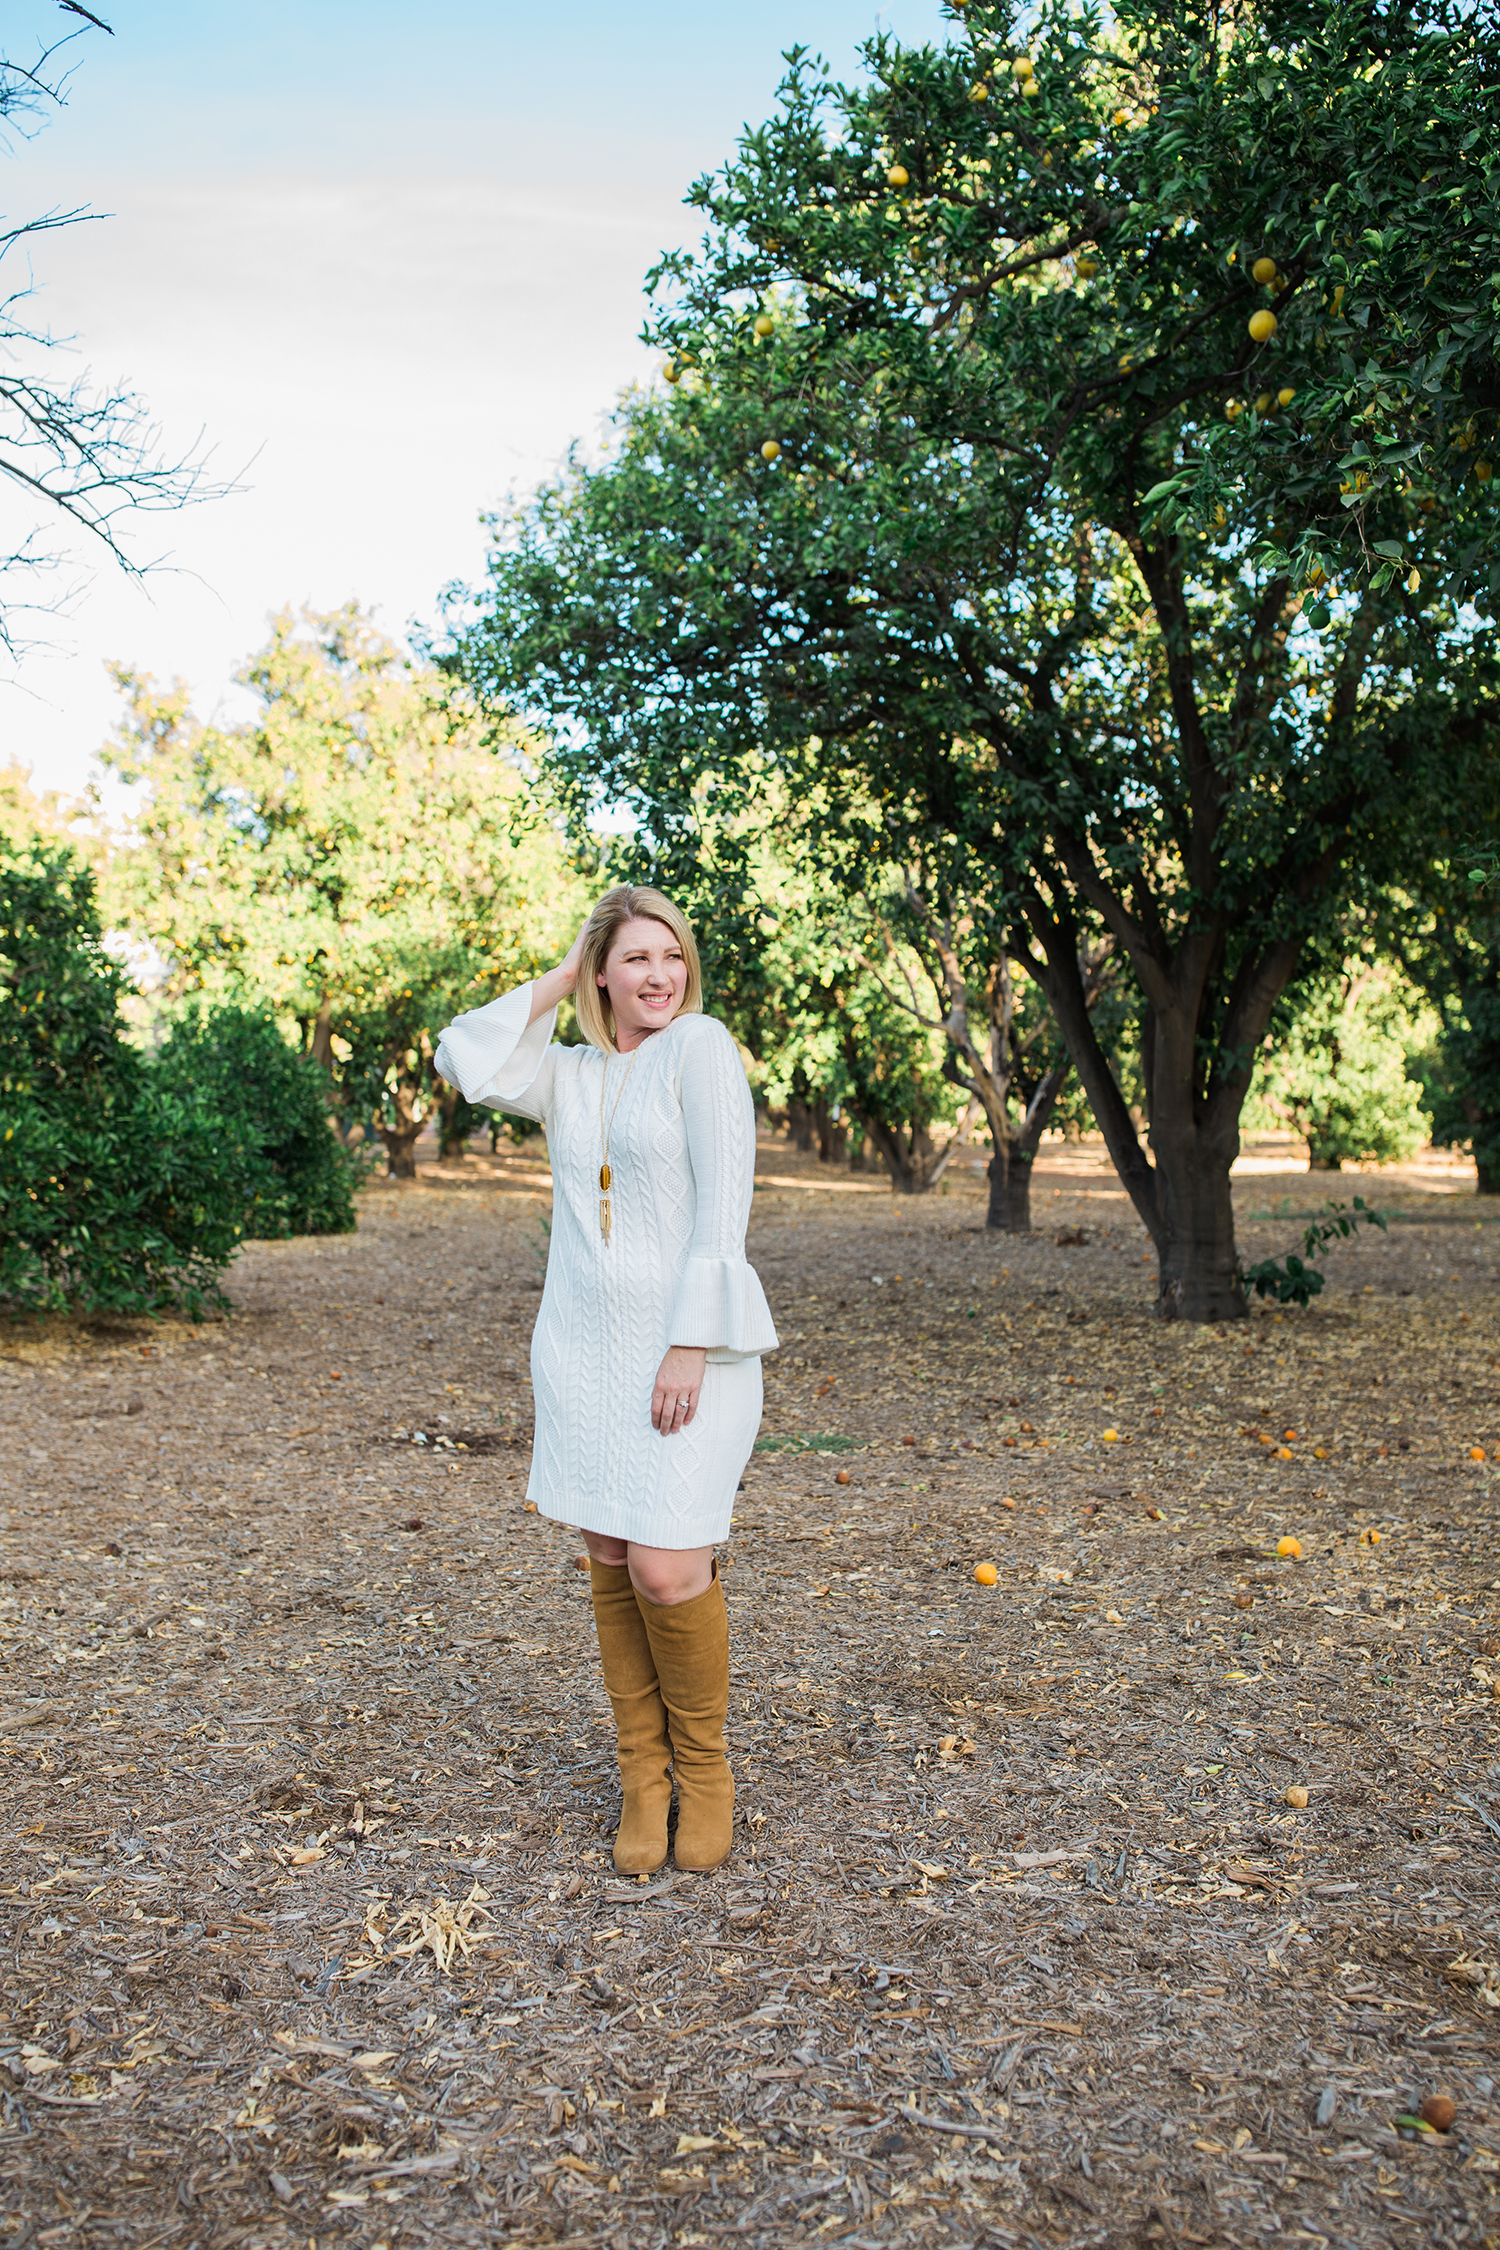 On the hunt for holiday dresses? This white sweater dress is flattering, comfortable and super versatile!